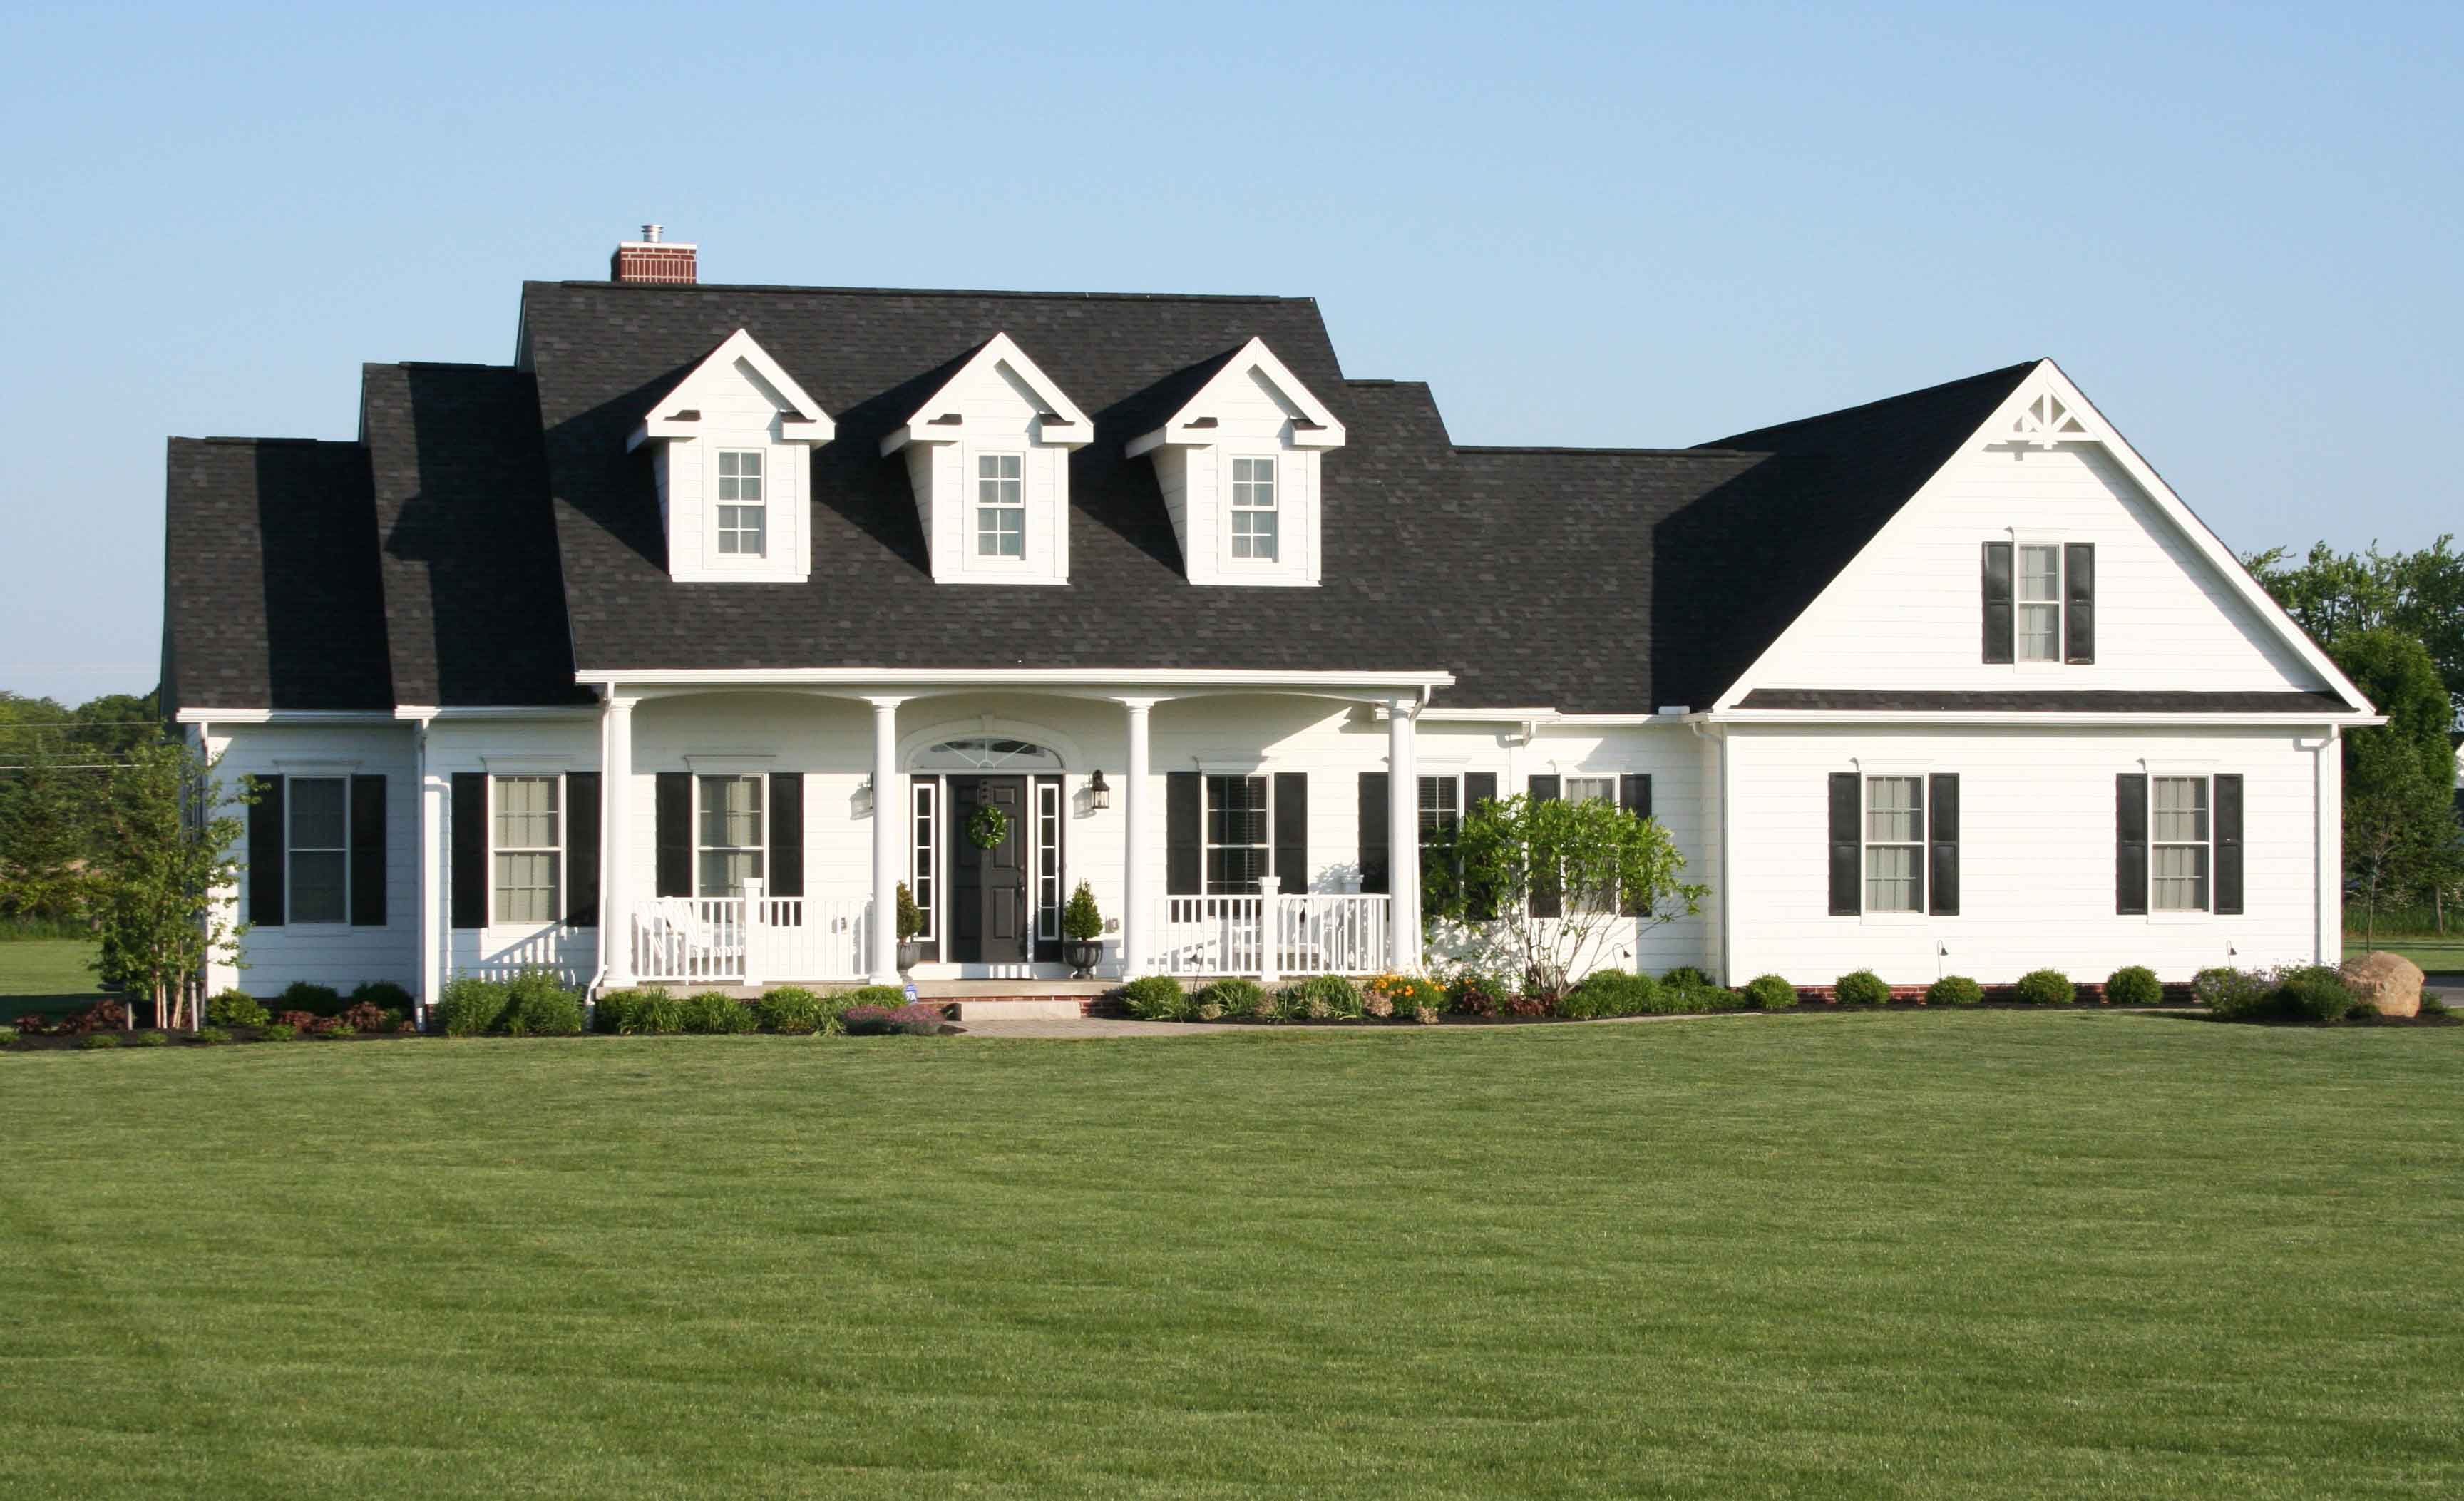 The Cape Cod Dream Home Learn the